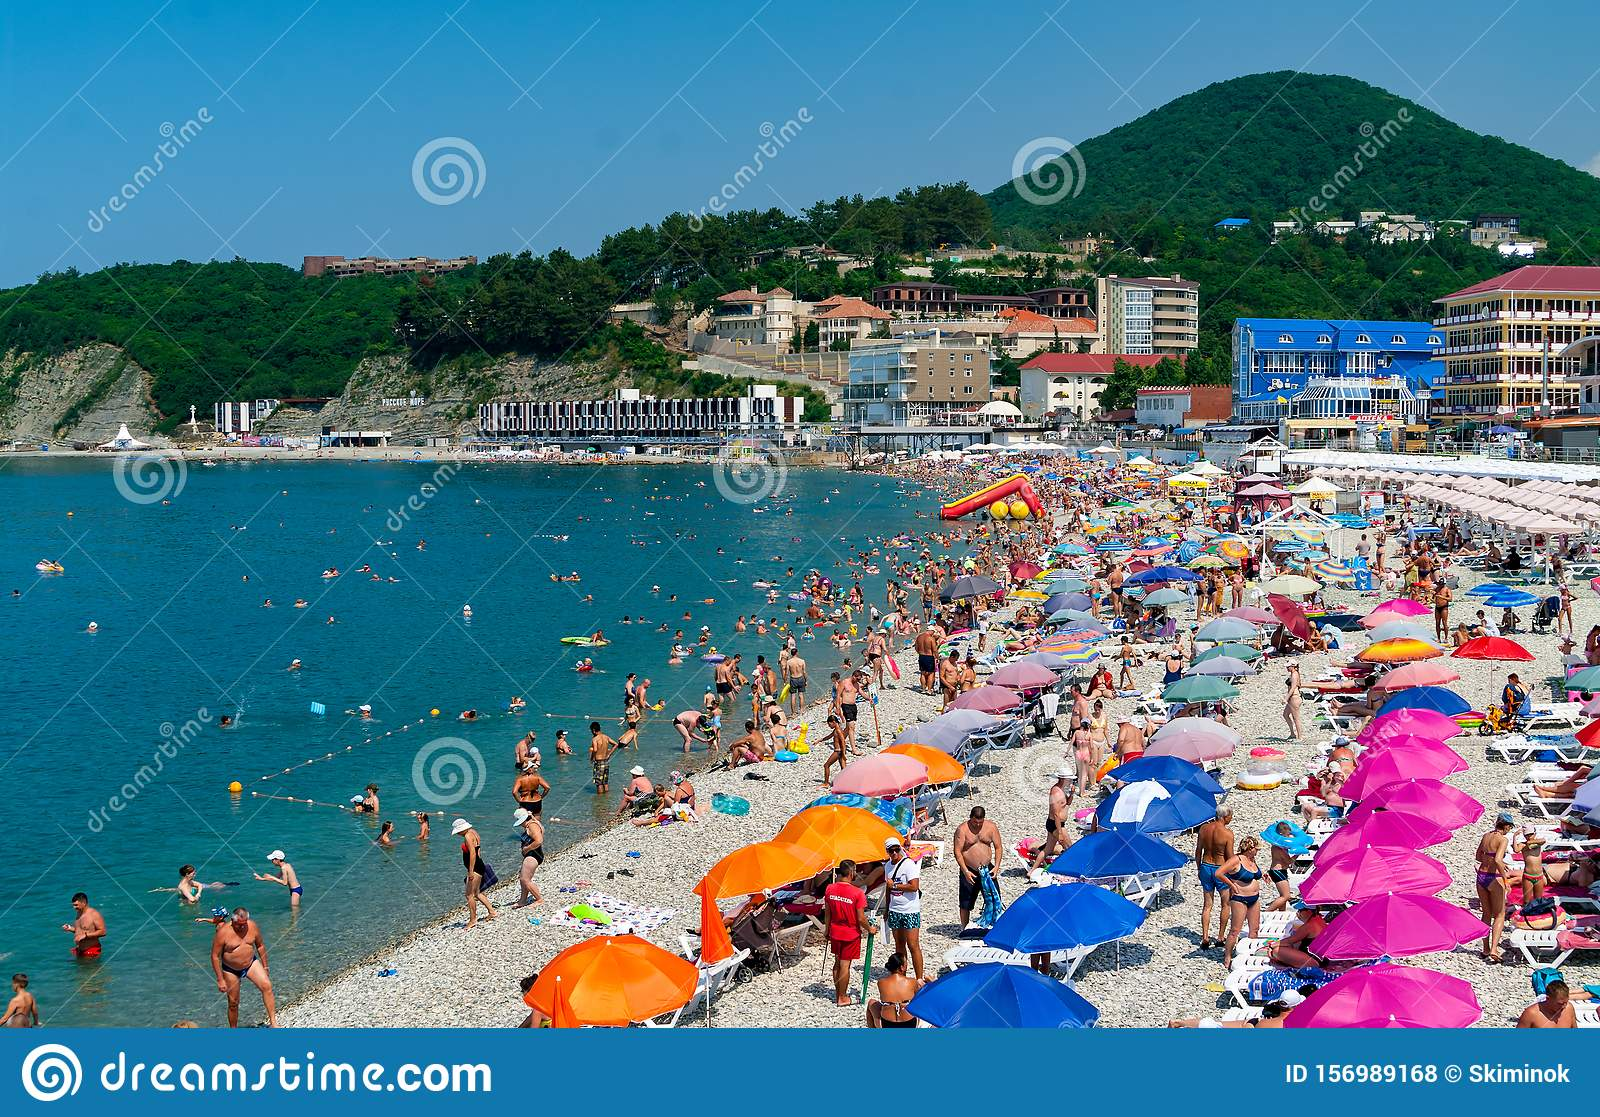 Crowds Of Bathers On The Beach At Black Sea Olginka Krasnodar Krai Russia Editorial Stock Photo Image Of Olginka Nature 156989168